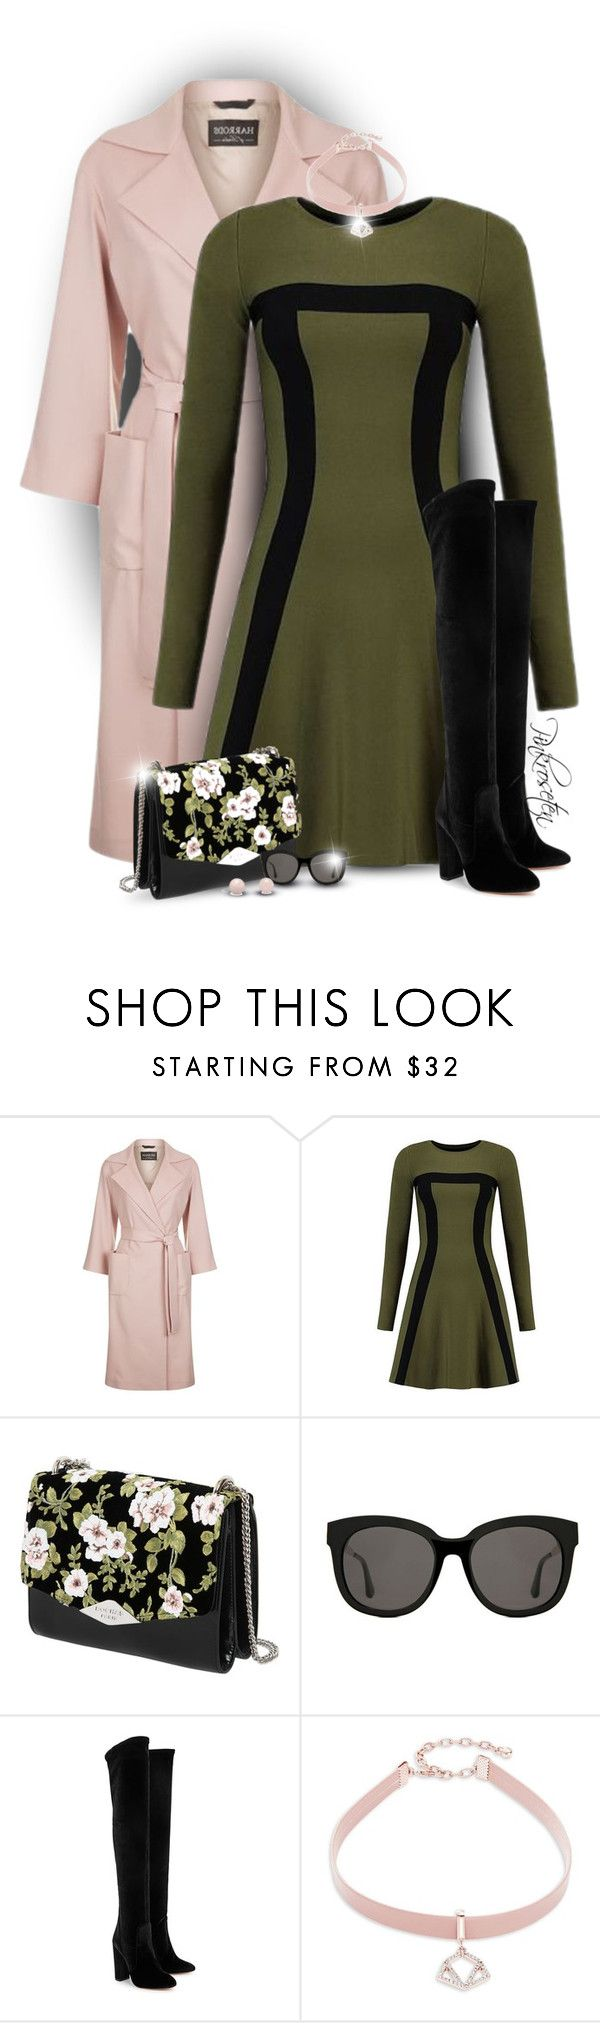 """Pink & Green"" by pinkroseten ❤ liked on Polyvore featuring Harrods, Rochas, Gentle Monster, Aquazzura and Design Lab"